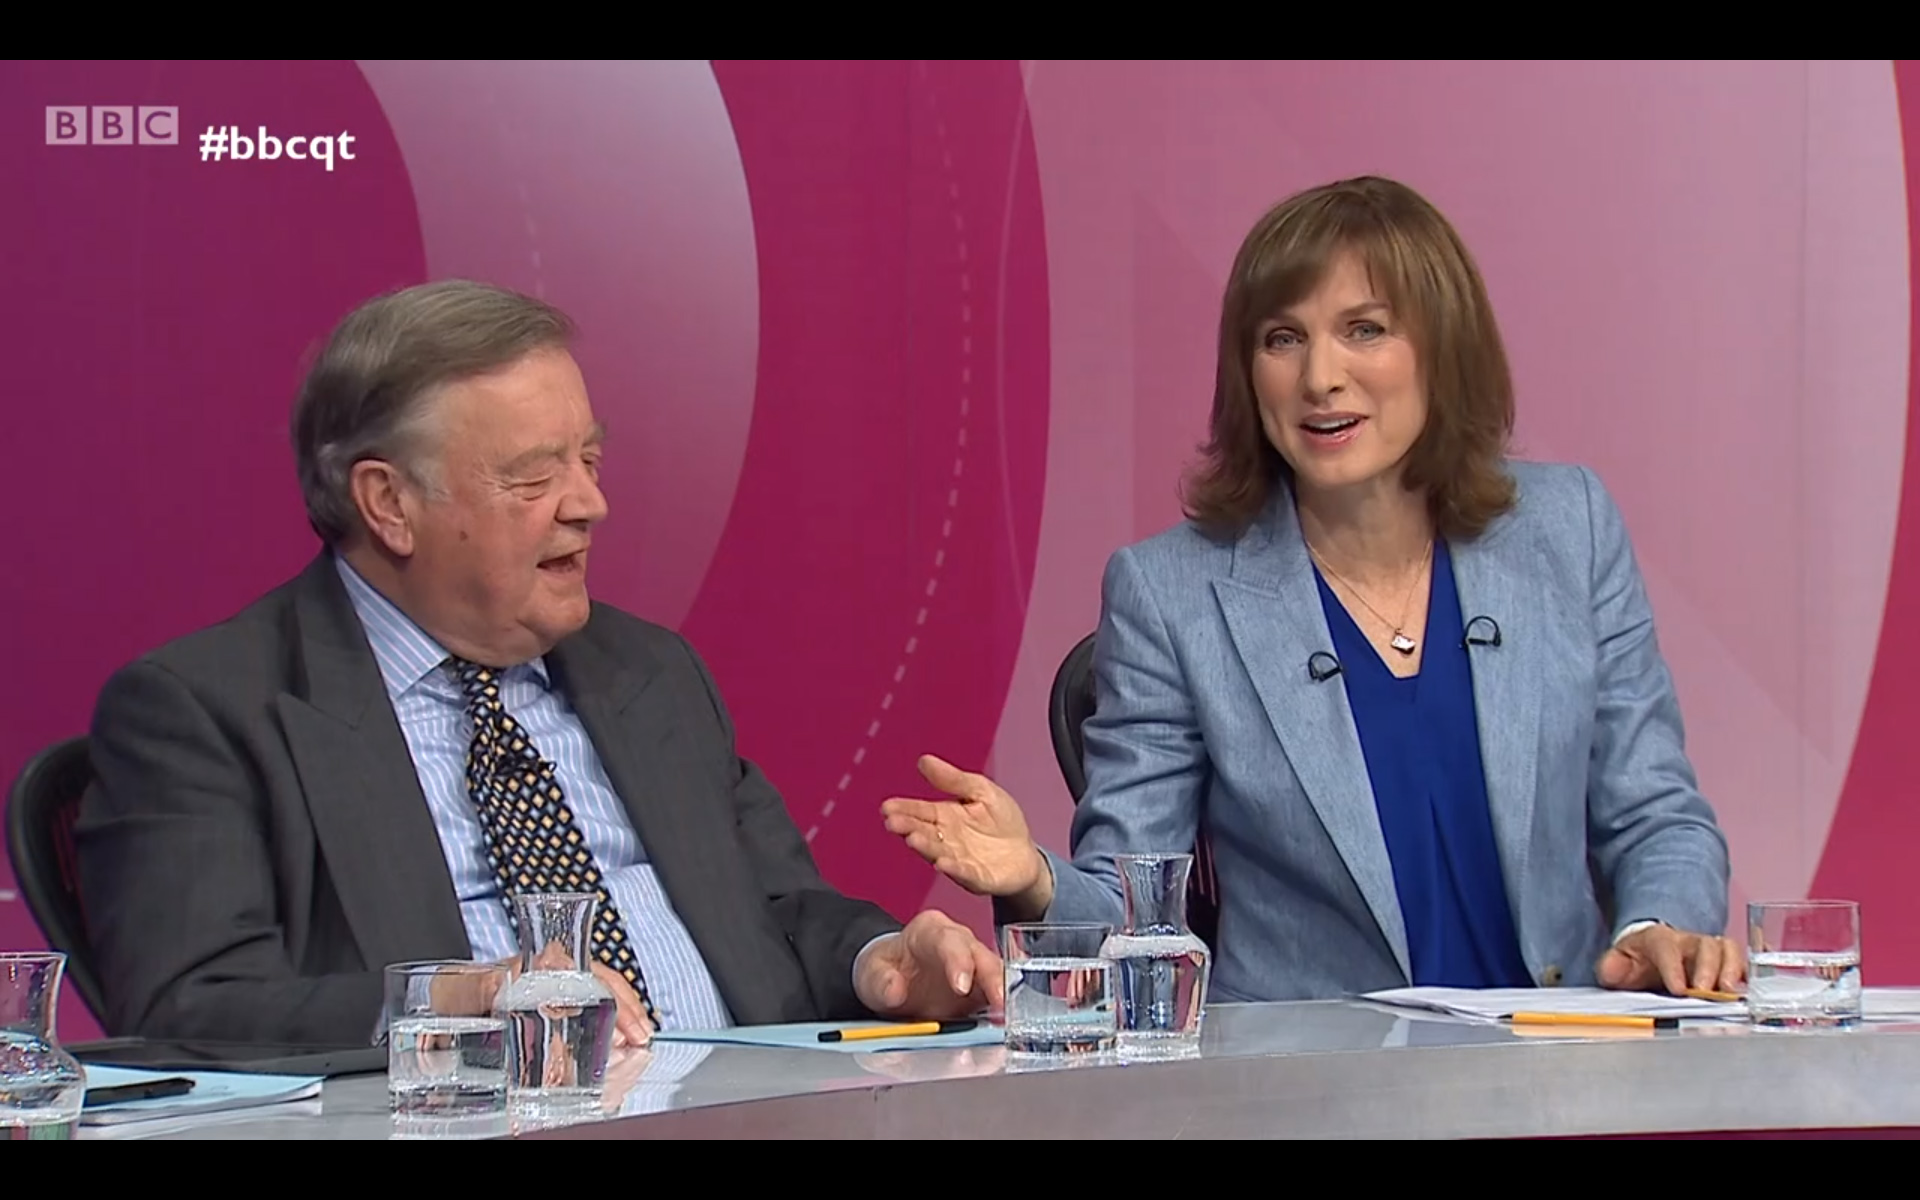 """Fiona Bruce: """"The thing I enjoy most is meeting people - it's the joy of the unexpected"""""""